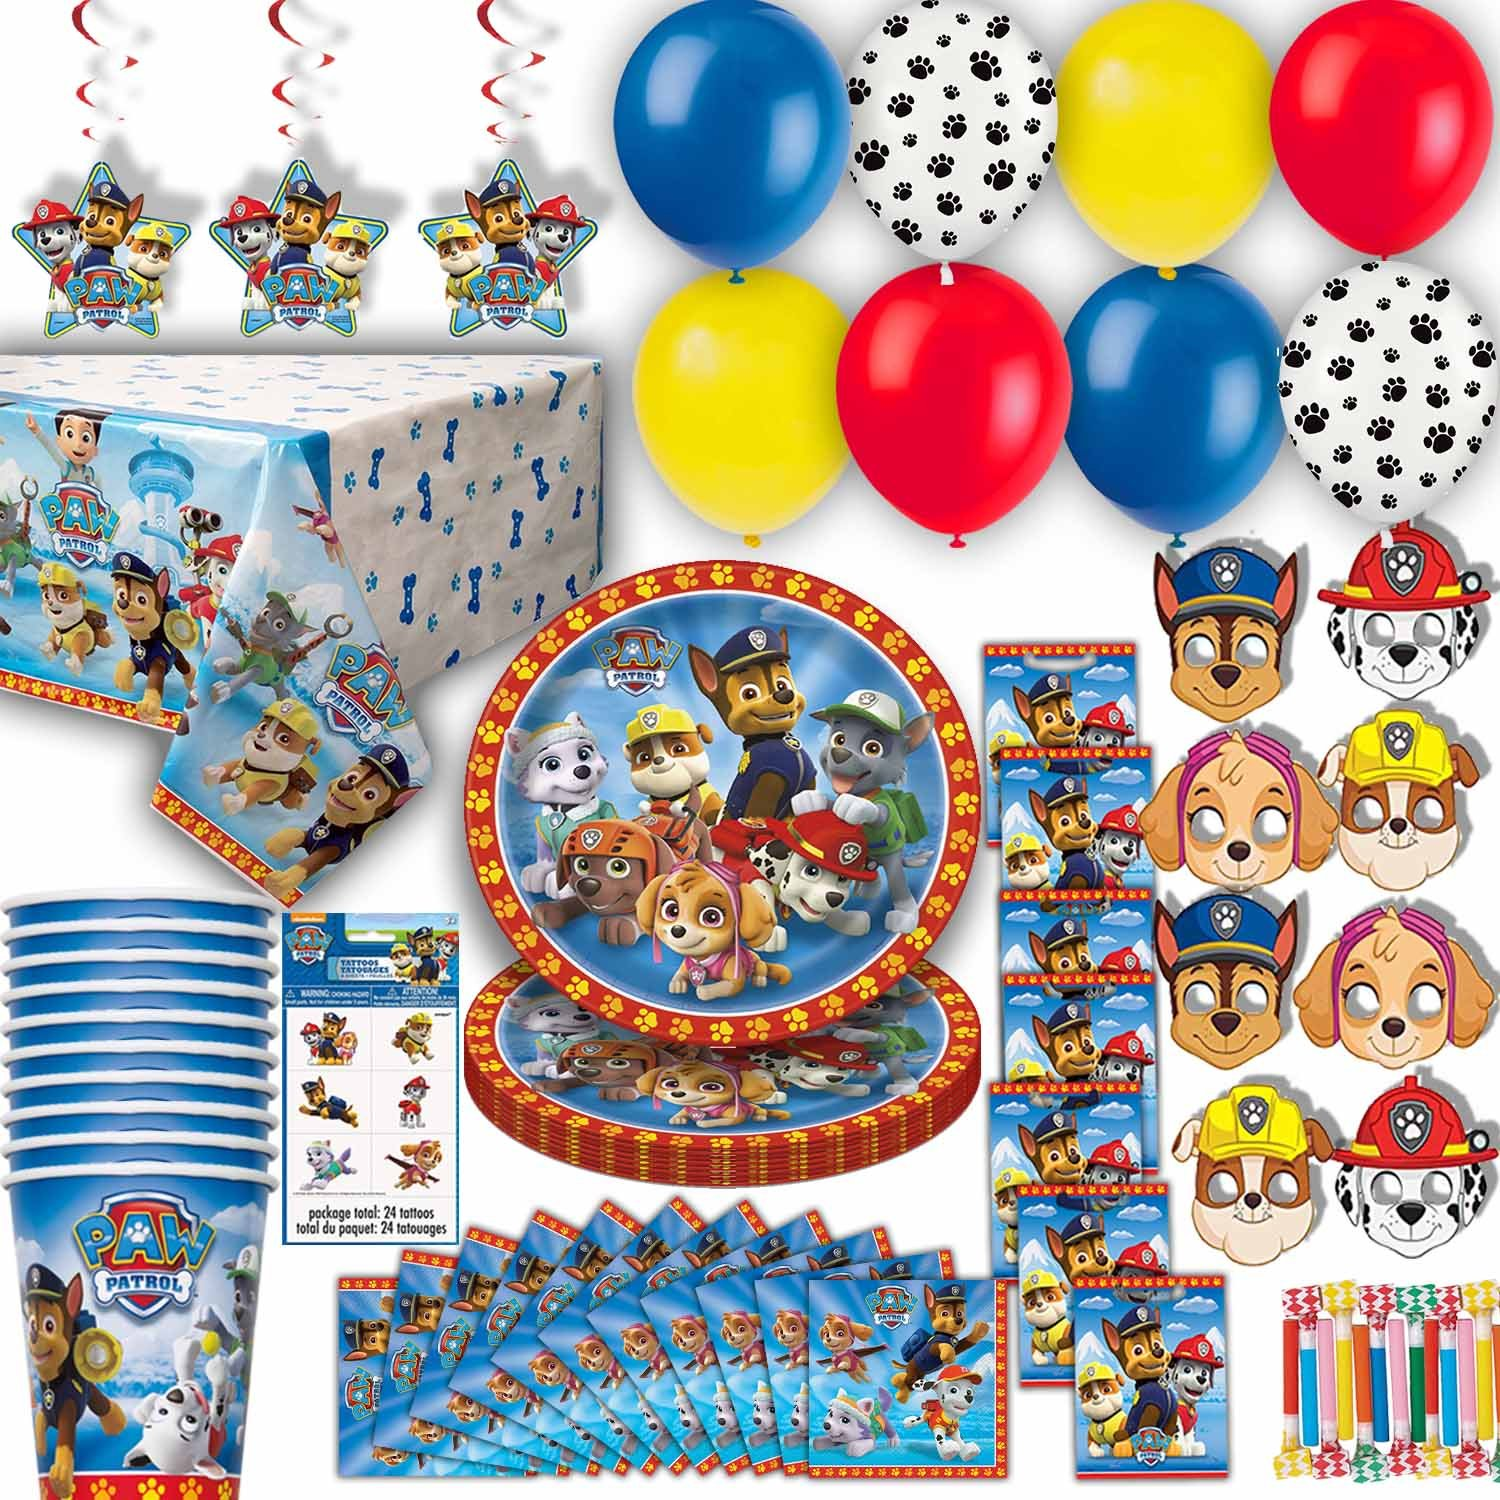 HeroFiber Paw Patrol Party for 8 - Plates, Cups, Napkins, Balloons, Masks, Loot Bags, Hanging Decorations, Tattoos, Table Cover, Party Blowouts - Paw Patrol Party Decorations and Supplies